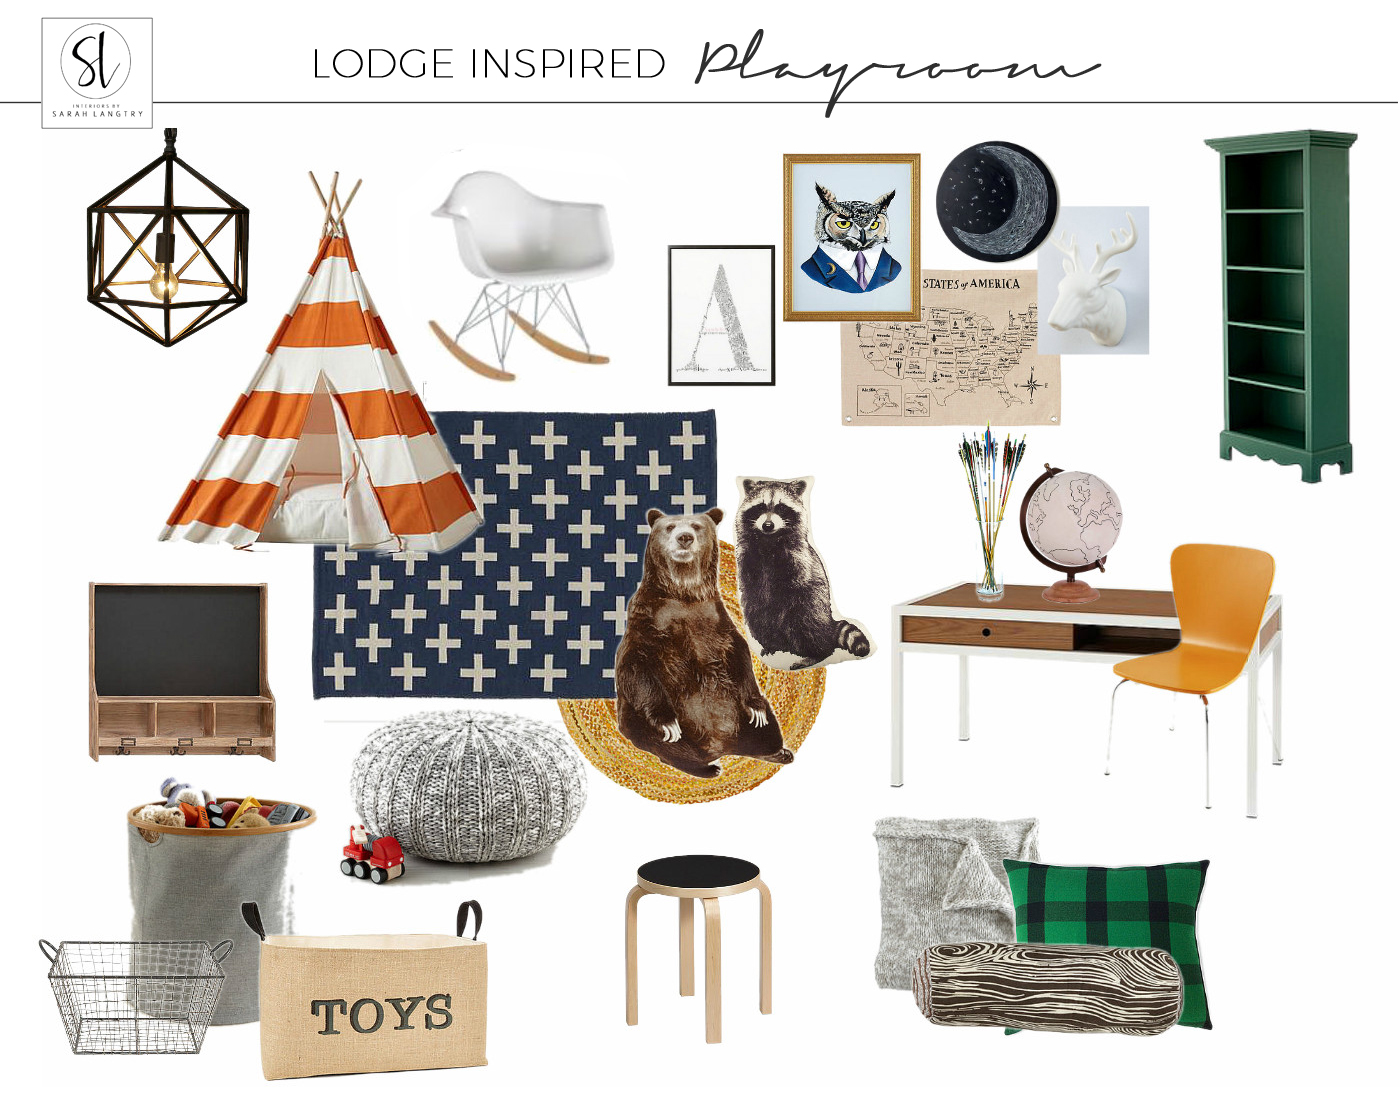 Lodge Inspired Play Room